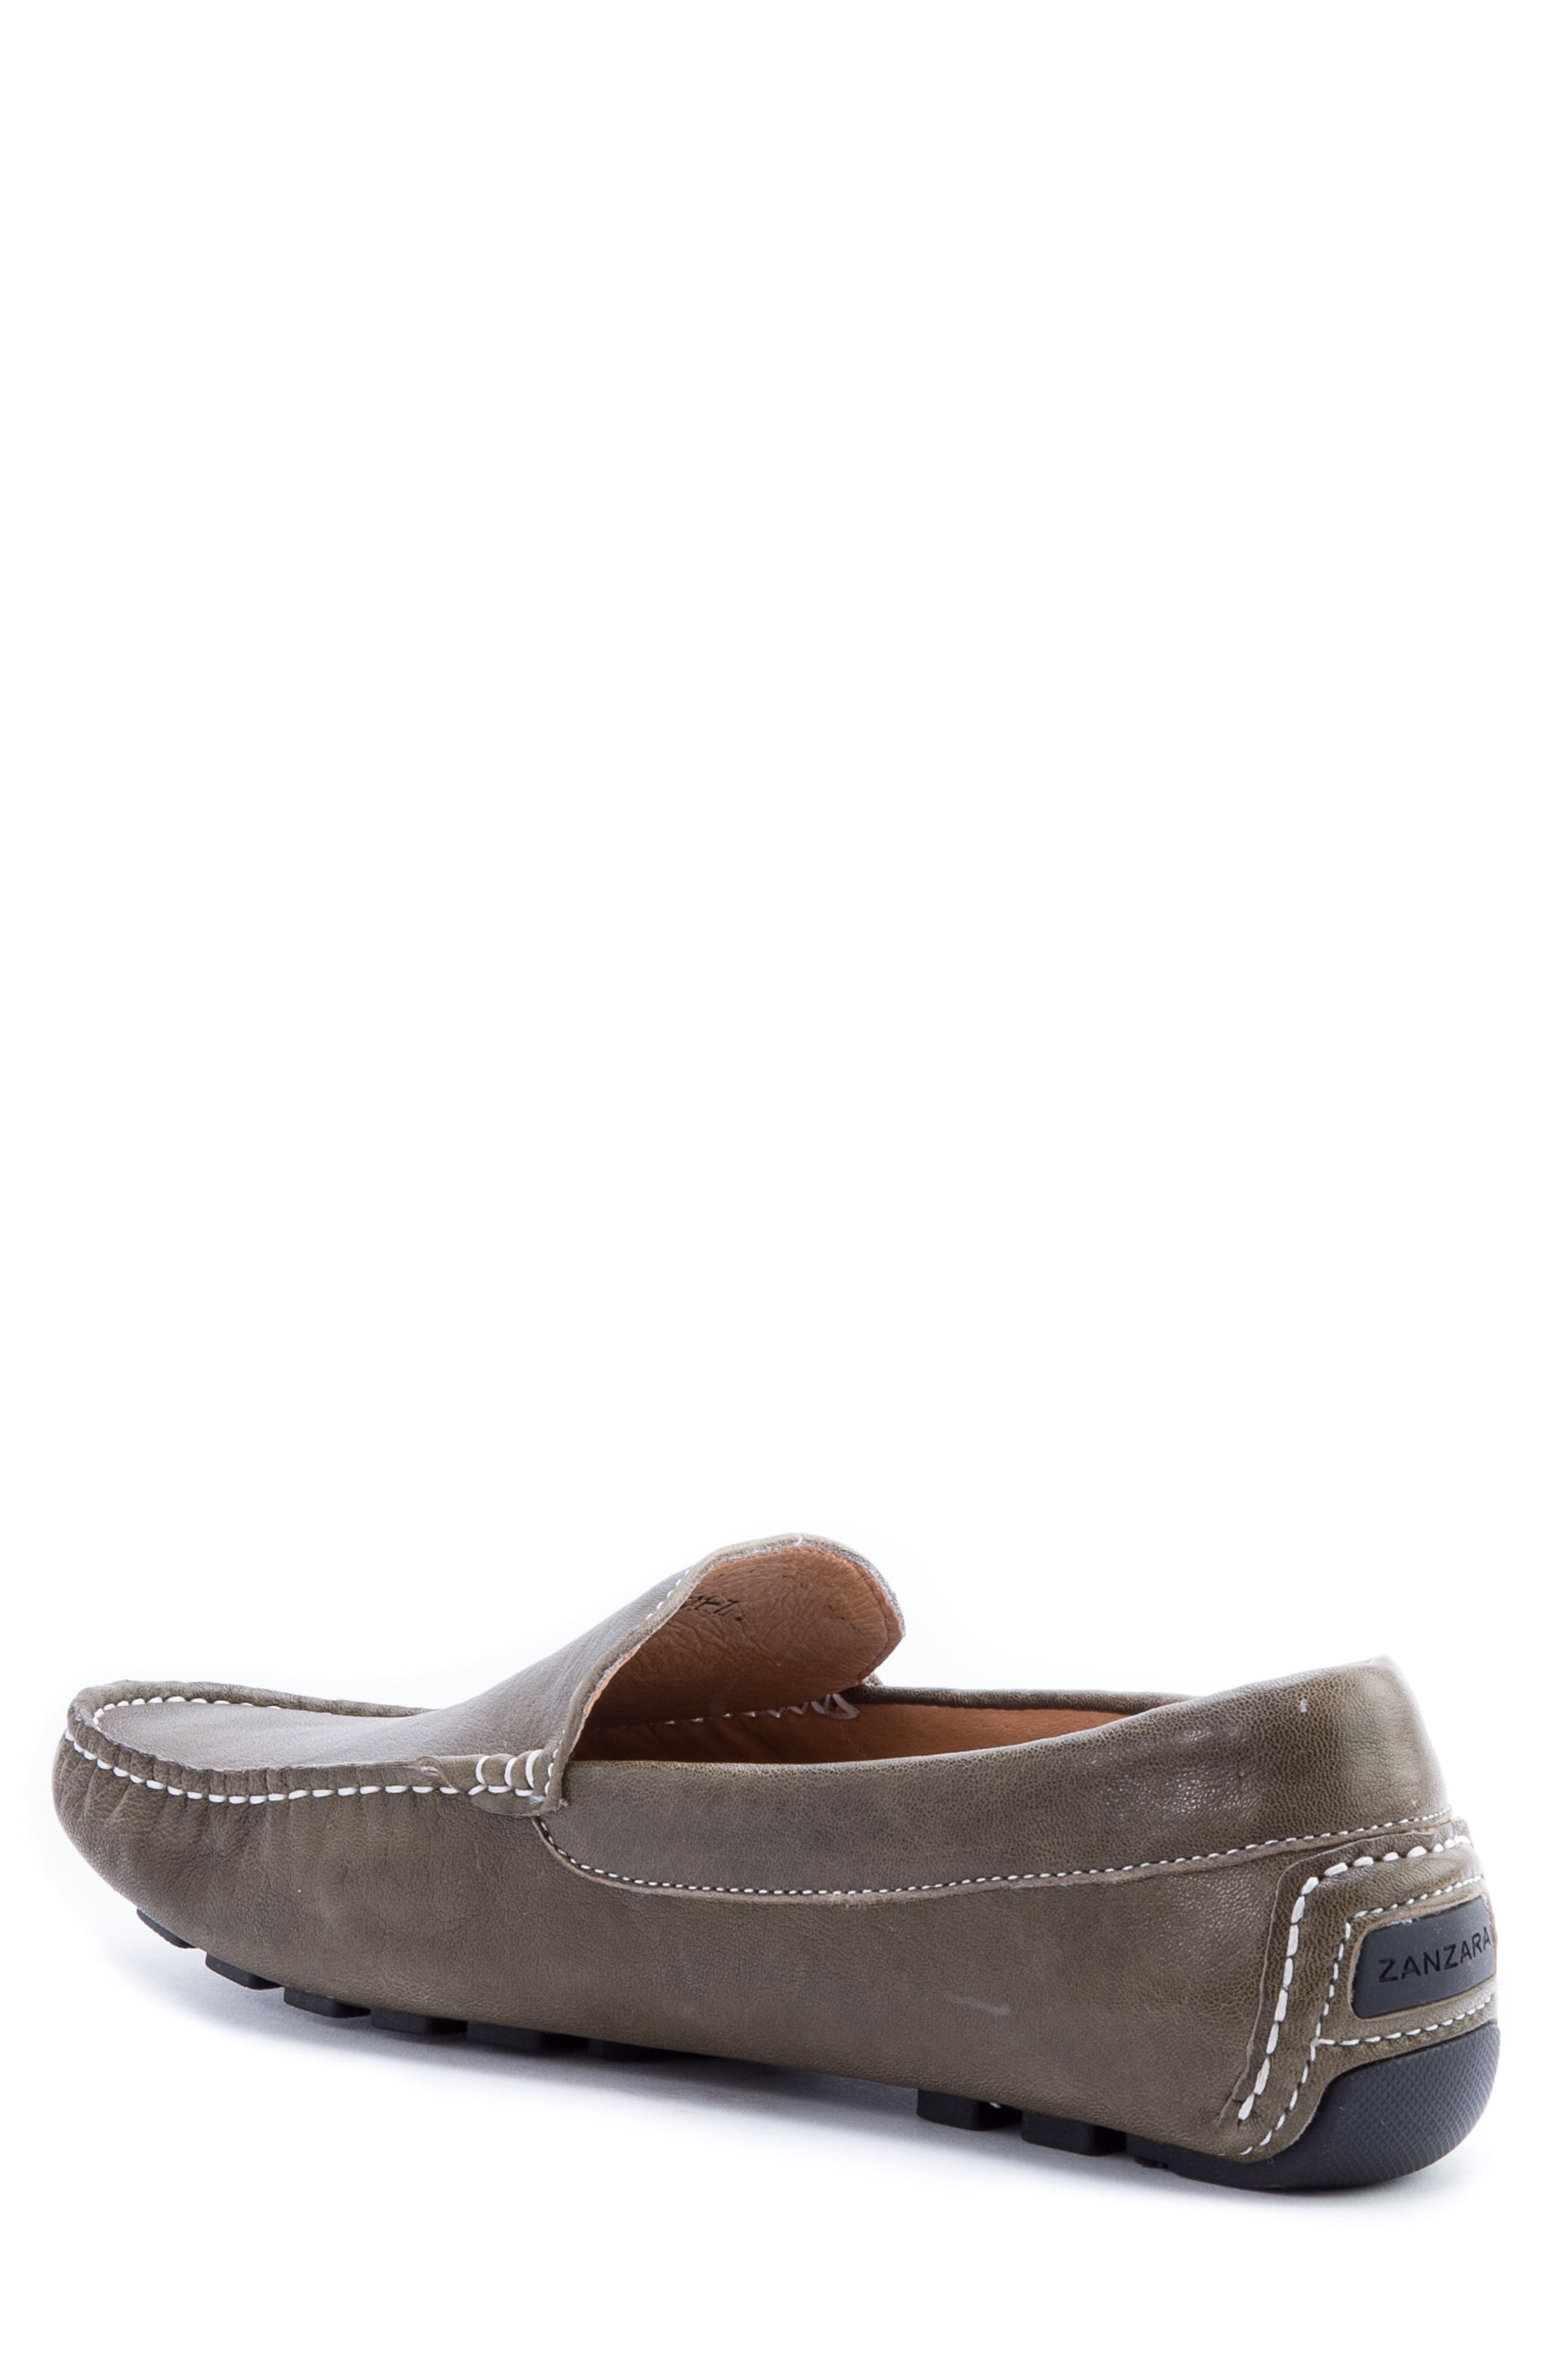 Zanzara Men's Severn Tassel Venetian Loafer